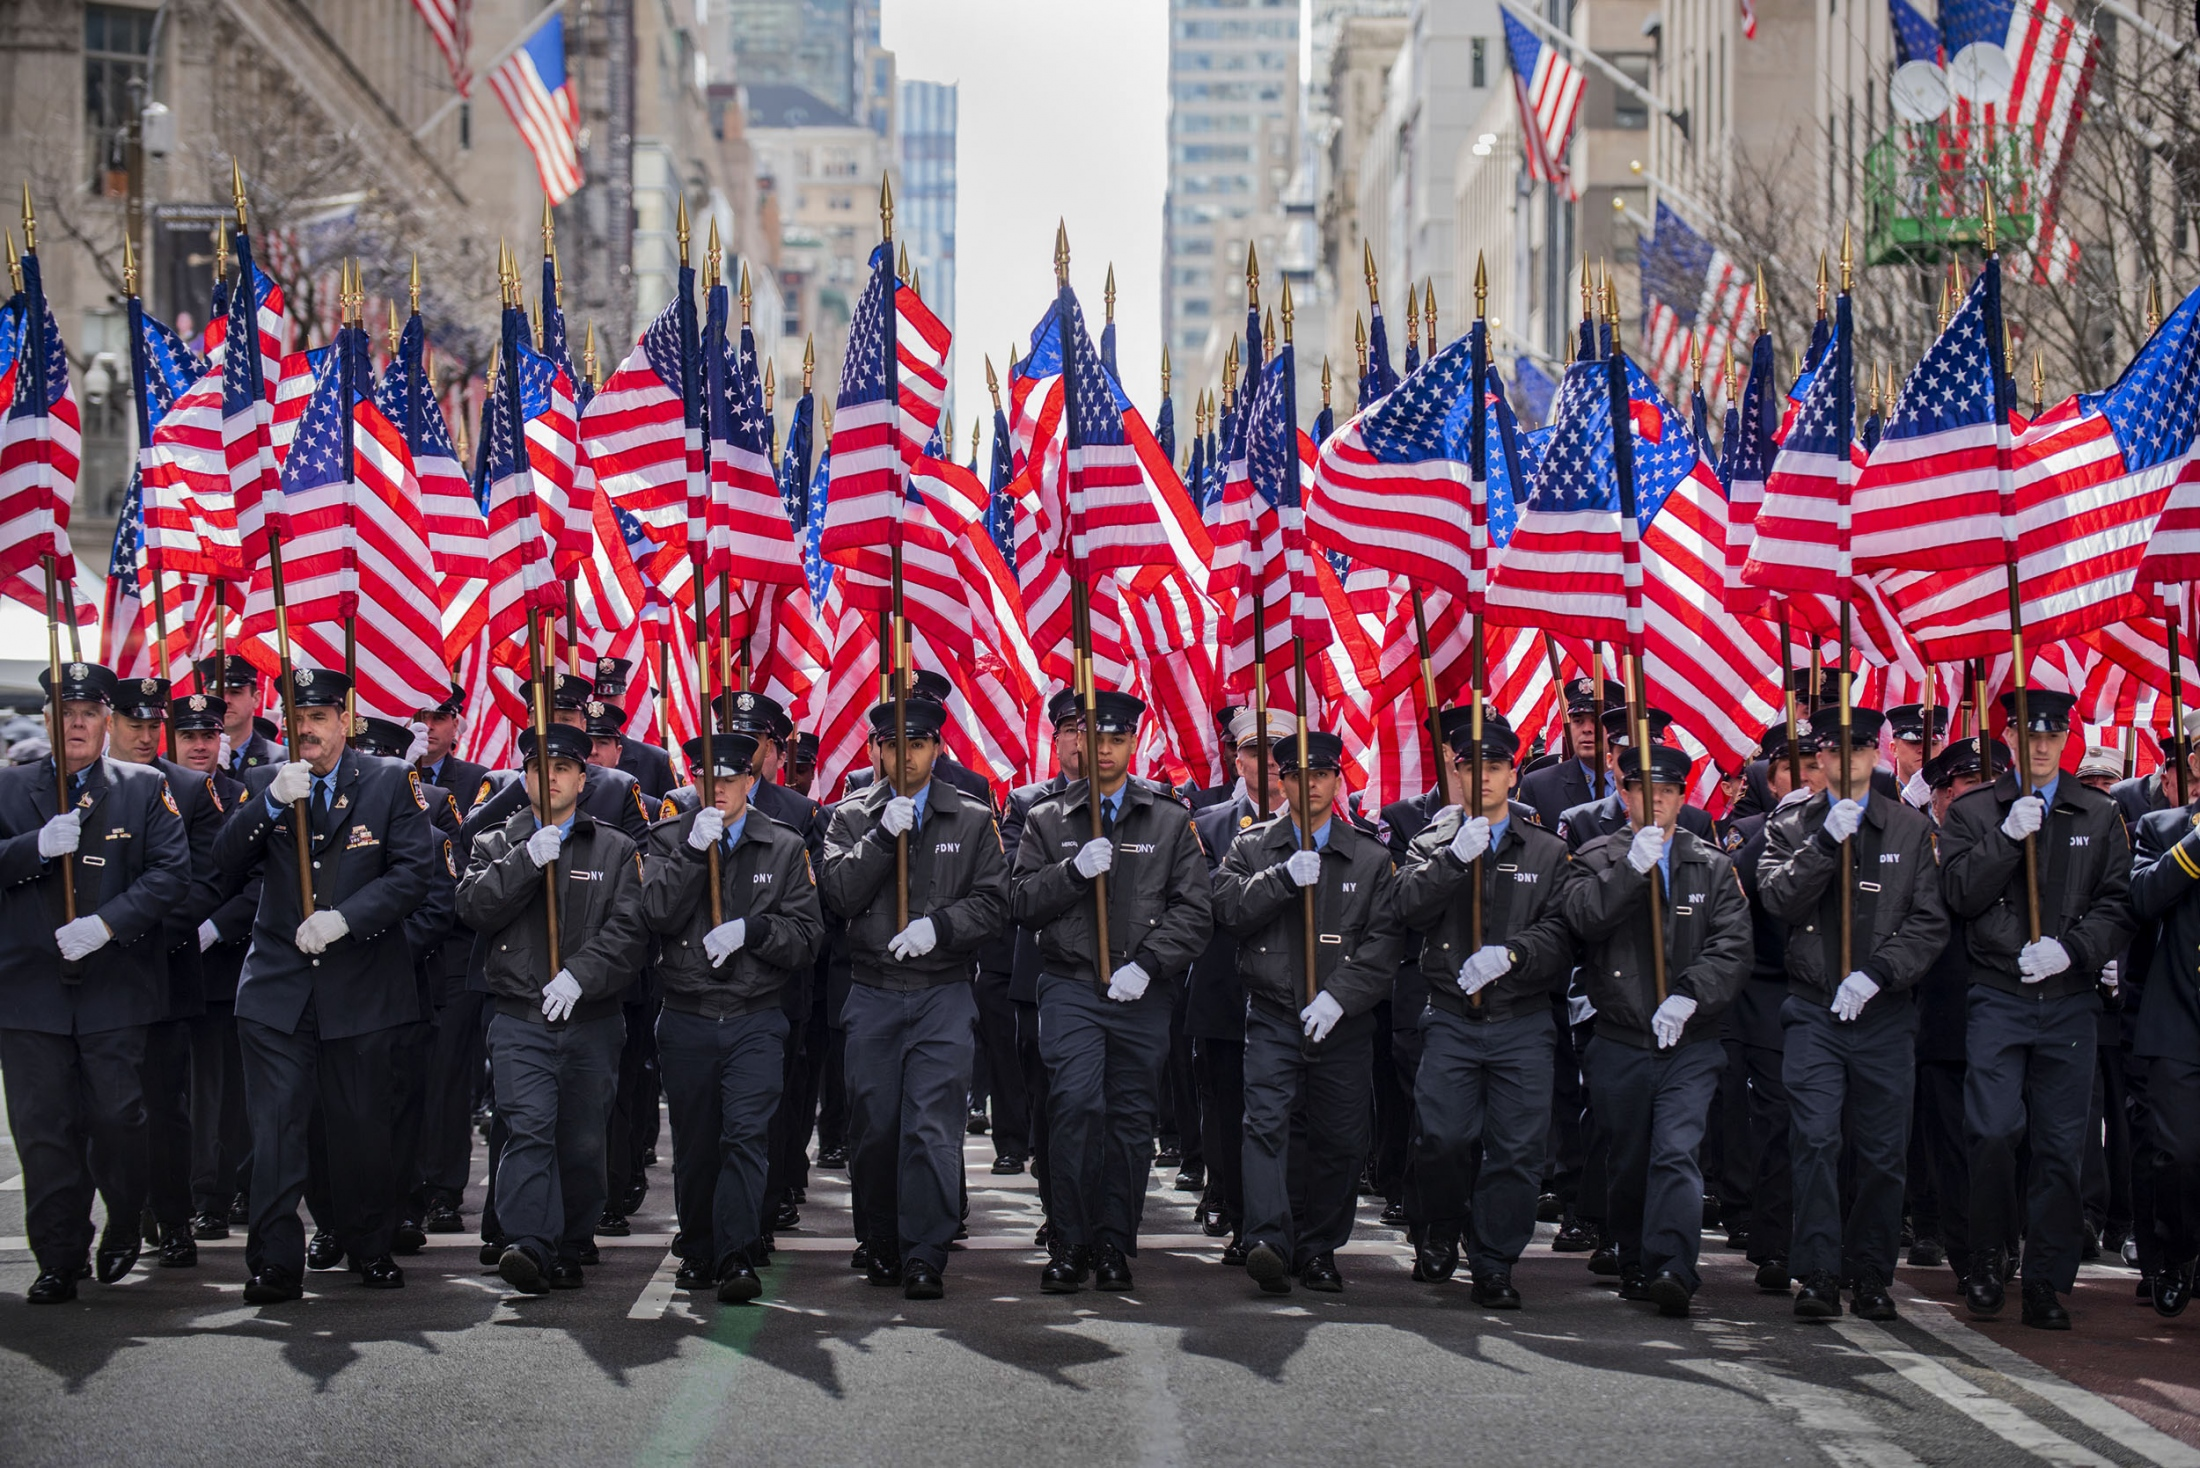 Photography image - New York City Fire Fighters Battalion carrying American flags at the 2019 St Patricks Day Parade, NYC, NY.